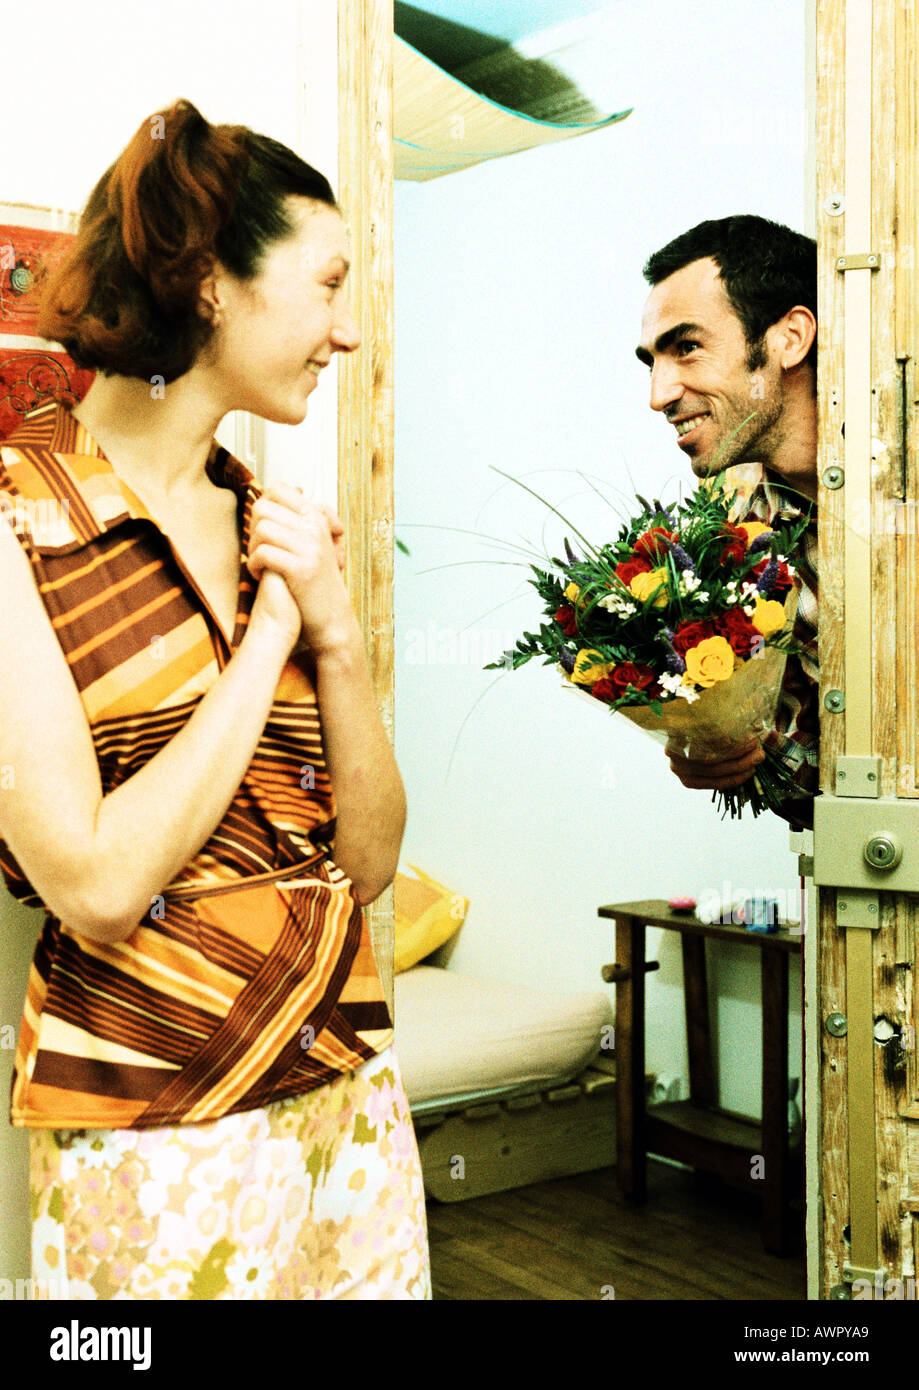 Couple, man walking through door holding bouquet of flowers, woman smiling. Stock Photo